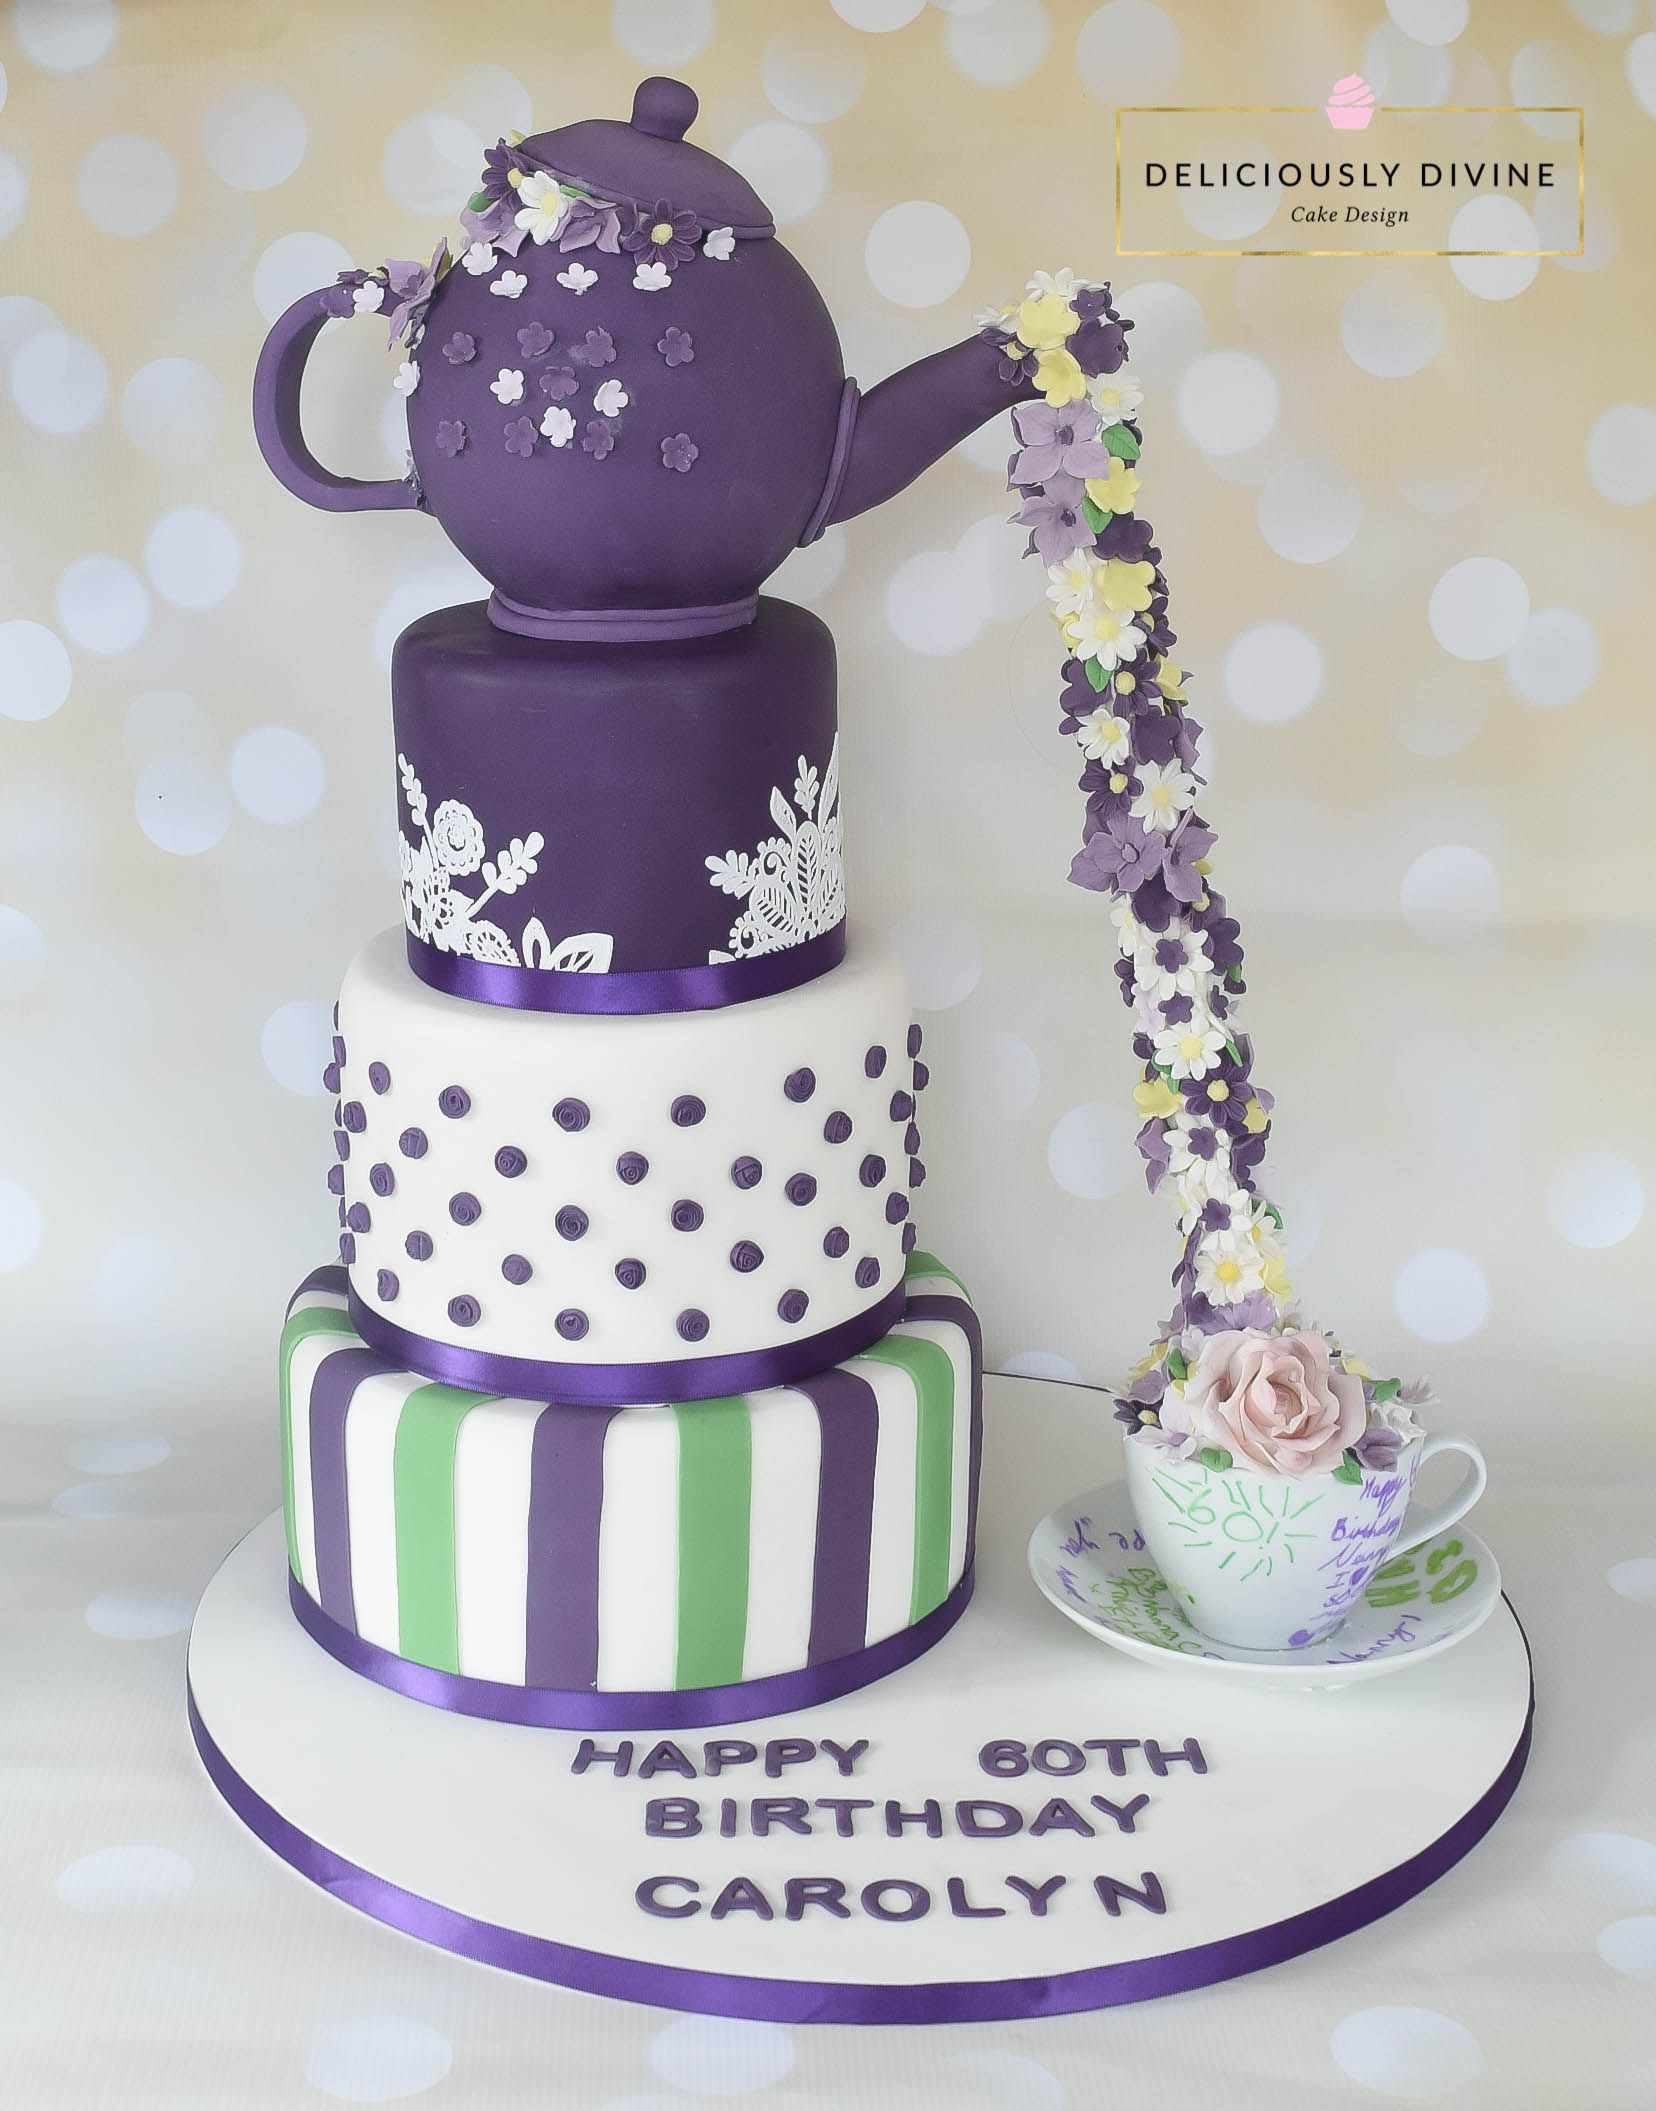 A teapot with during flowers 3 tier birthday cake. Purple